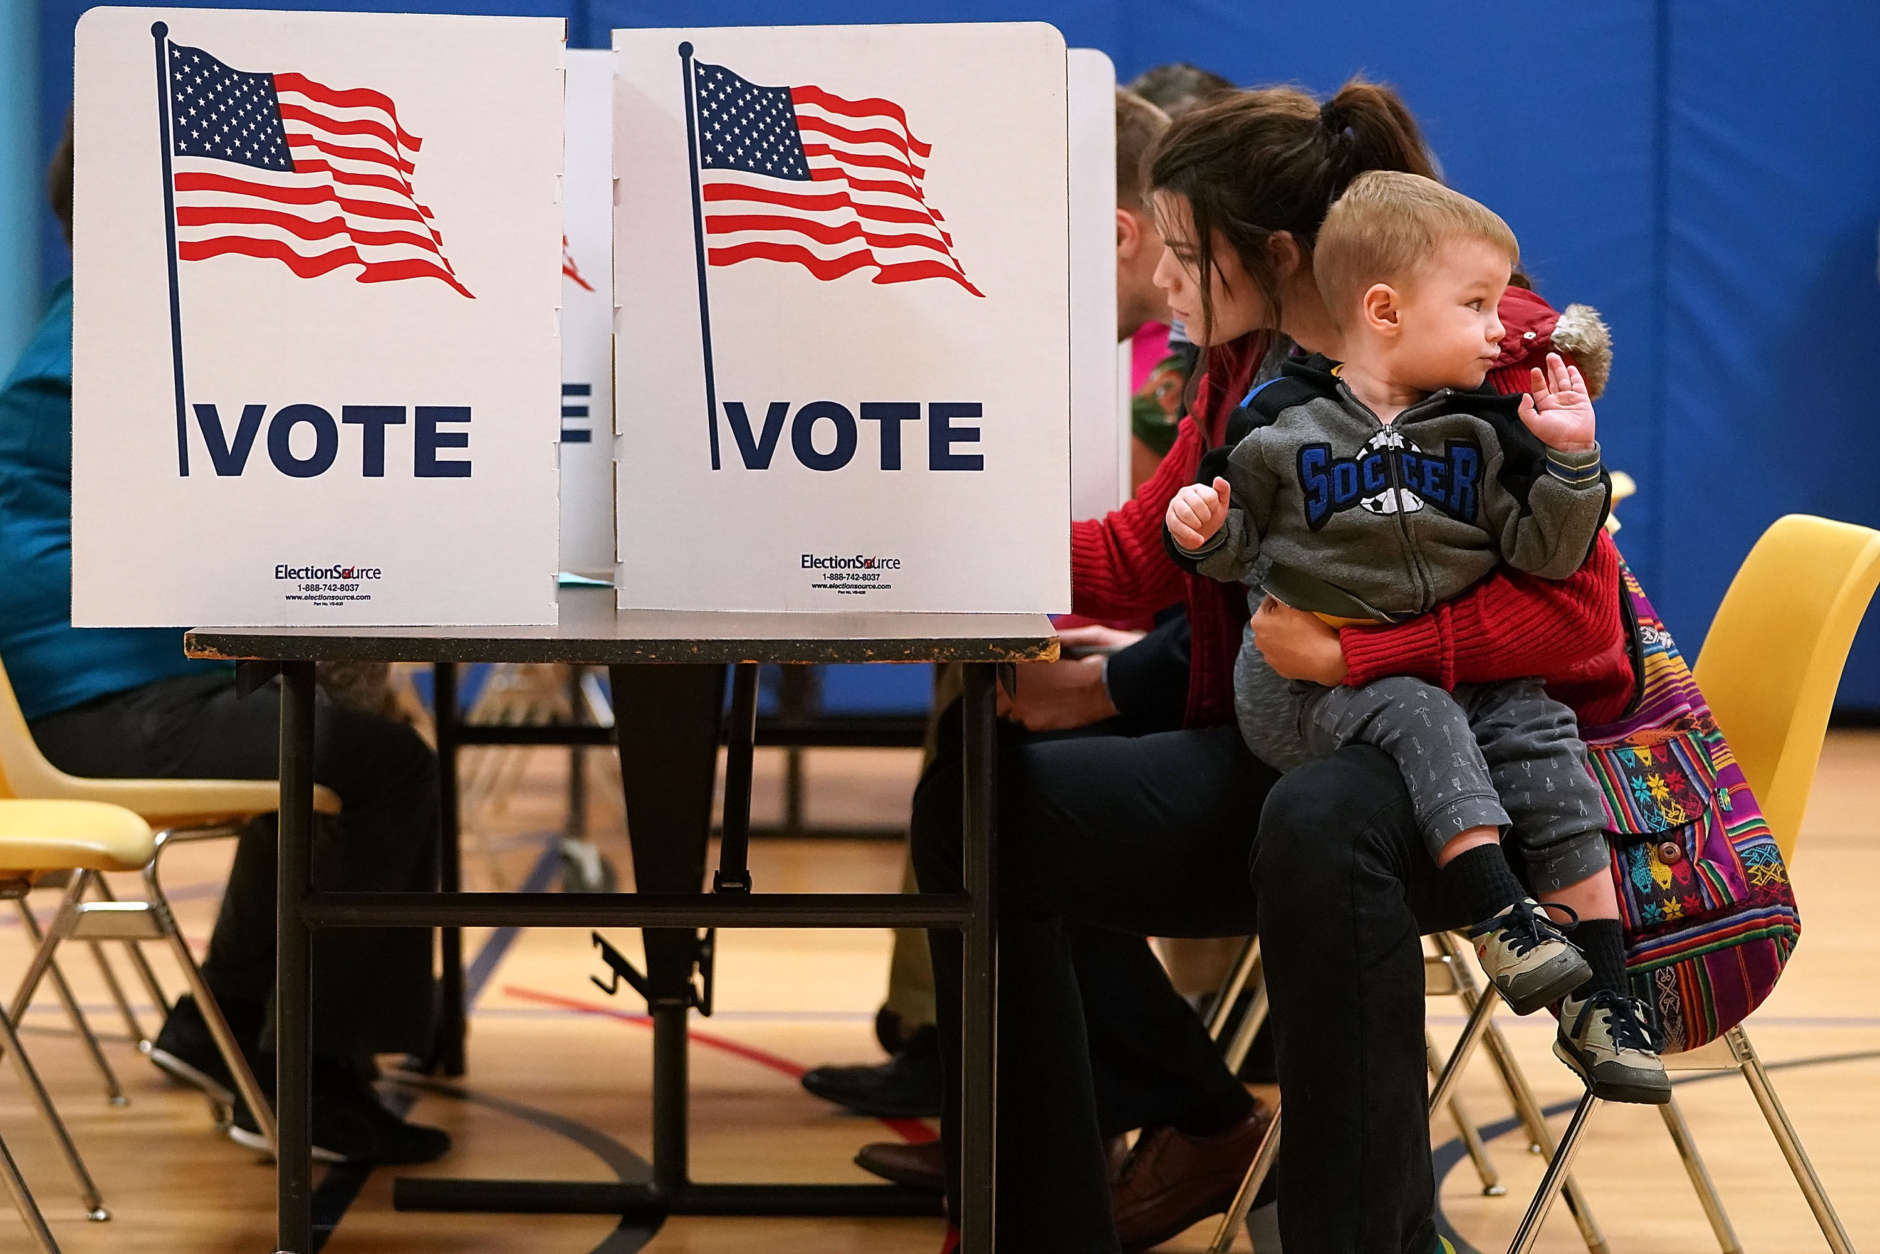 ALEXANDRIA, VA - NOVEMBER 07:   Karina Smith holds her 2-year-old son Kyler as she fills out her ballot at the polling place at Washington Mill Elementary School November 7, 2017 in Alexandria, Virginia. (Photo by Chip Somodevilla/Getty Images)